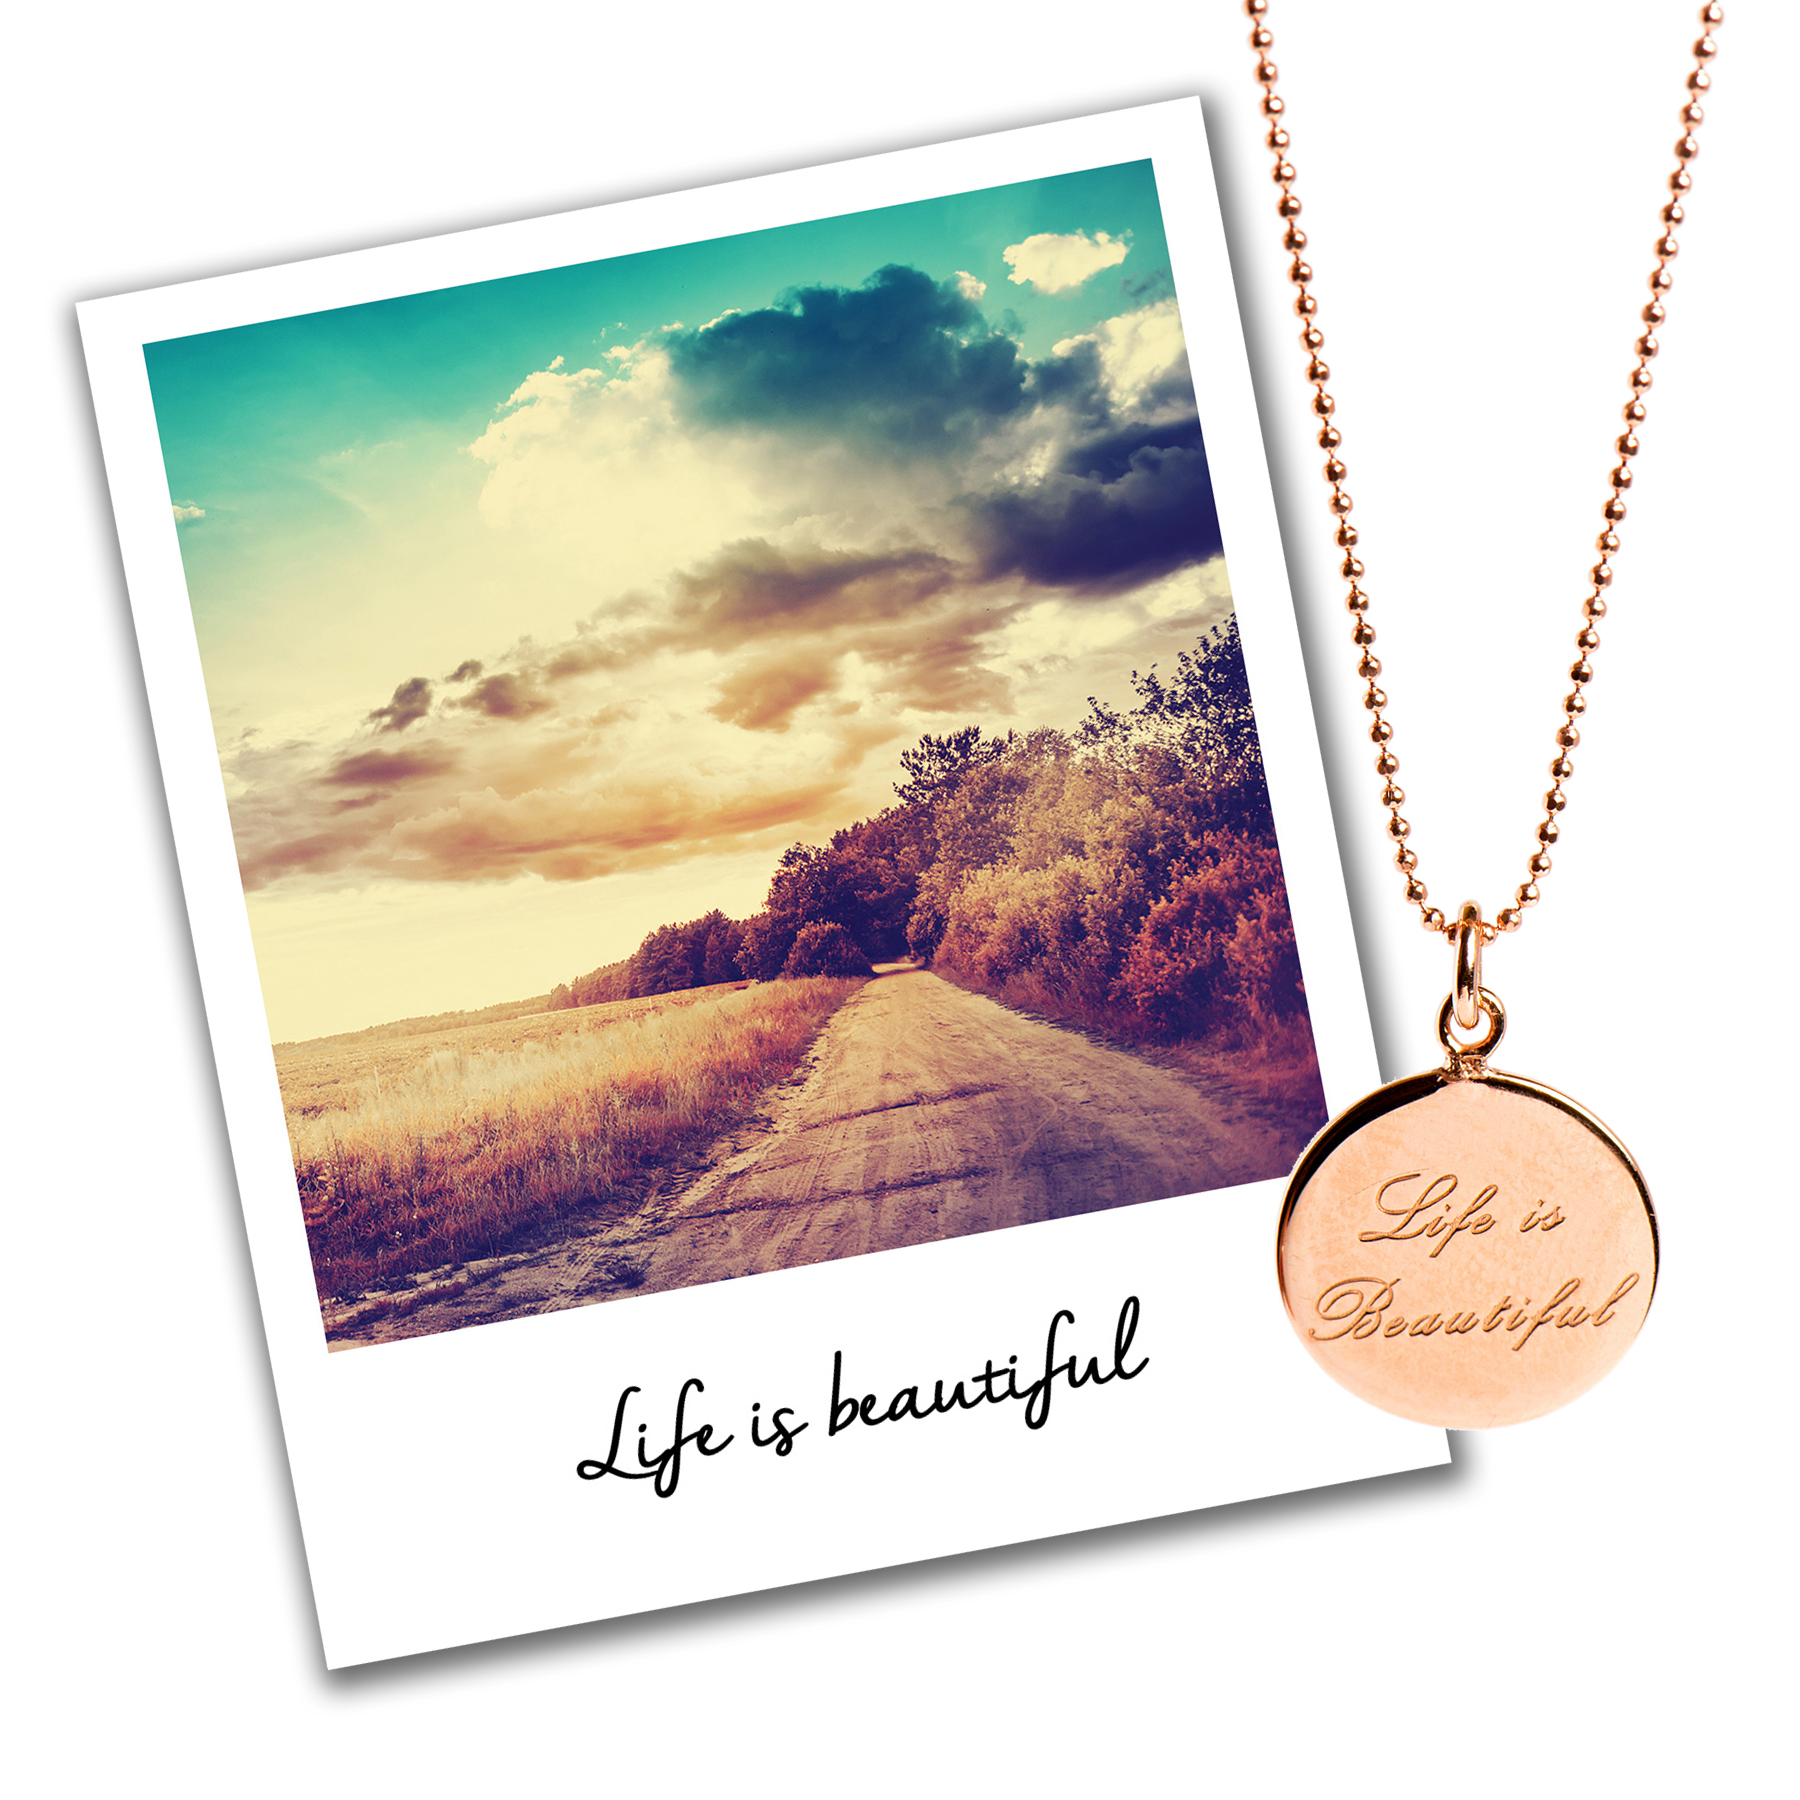 Mantra Jewellery, life is beautiful